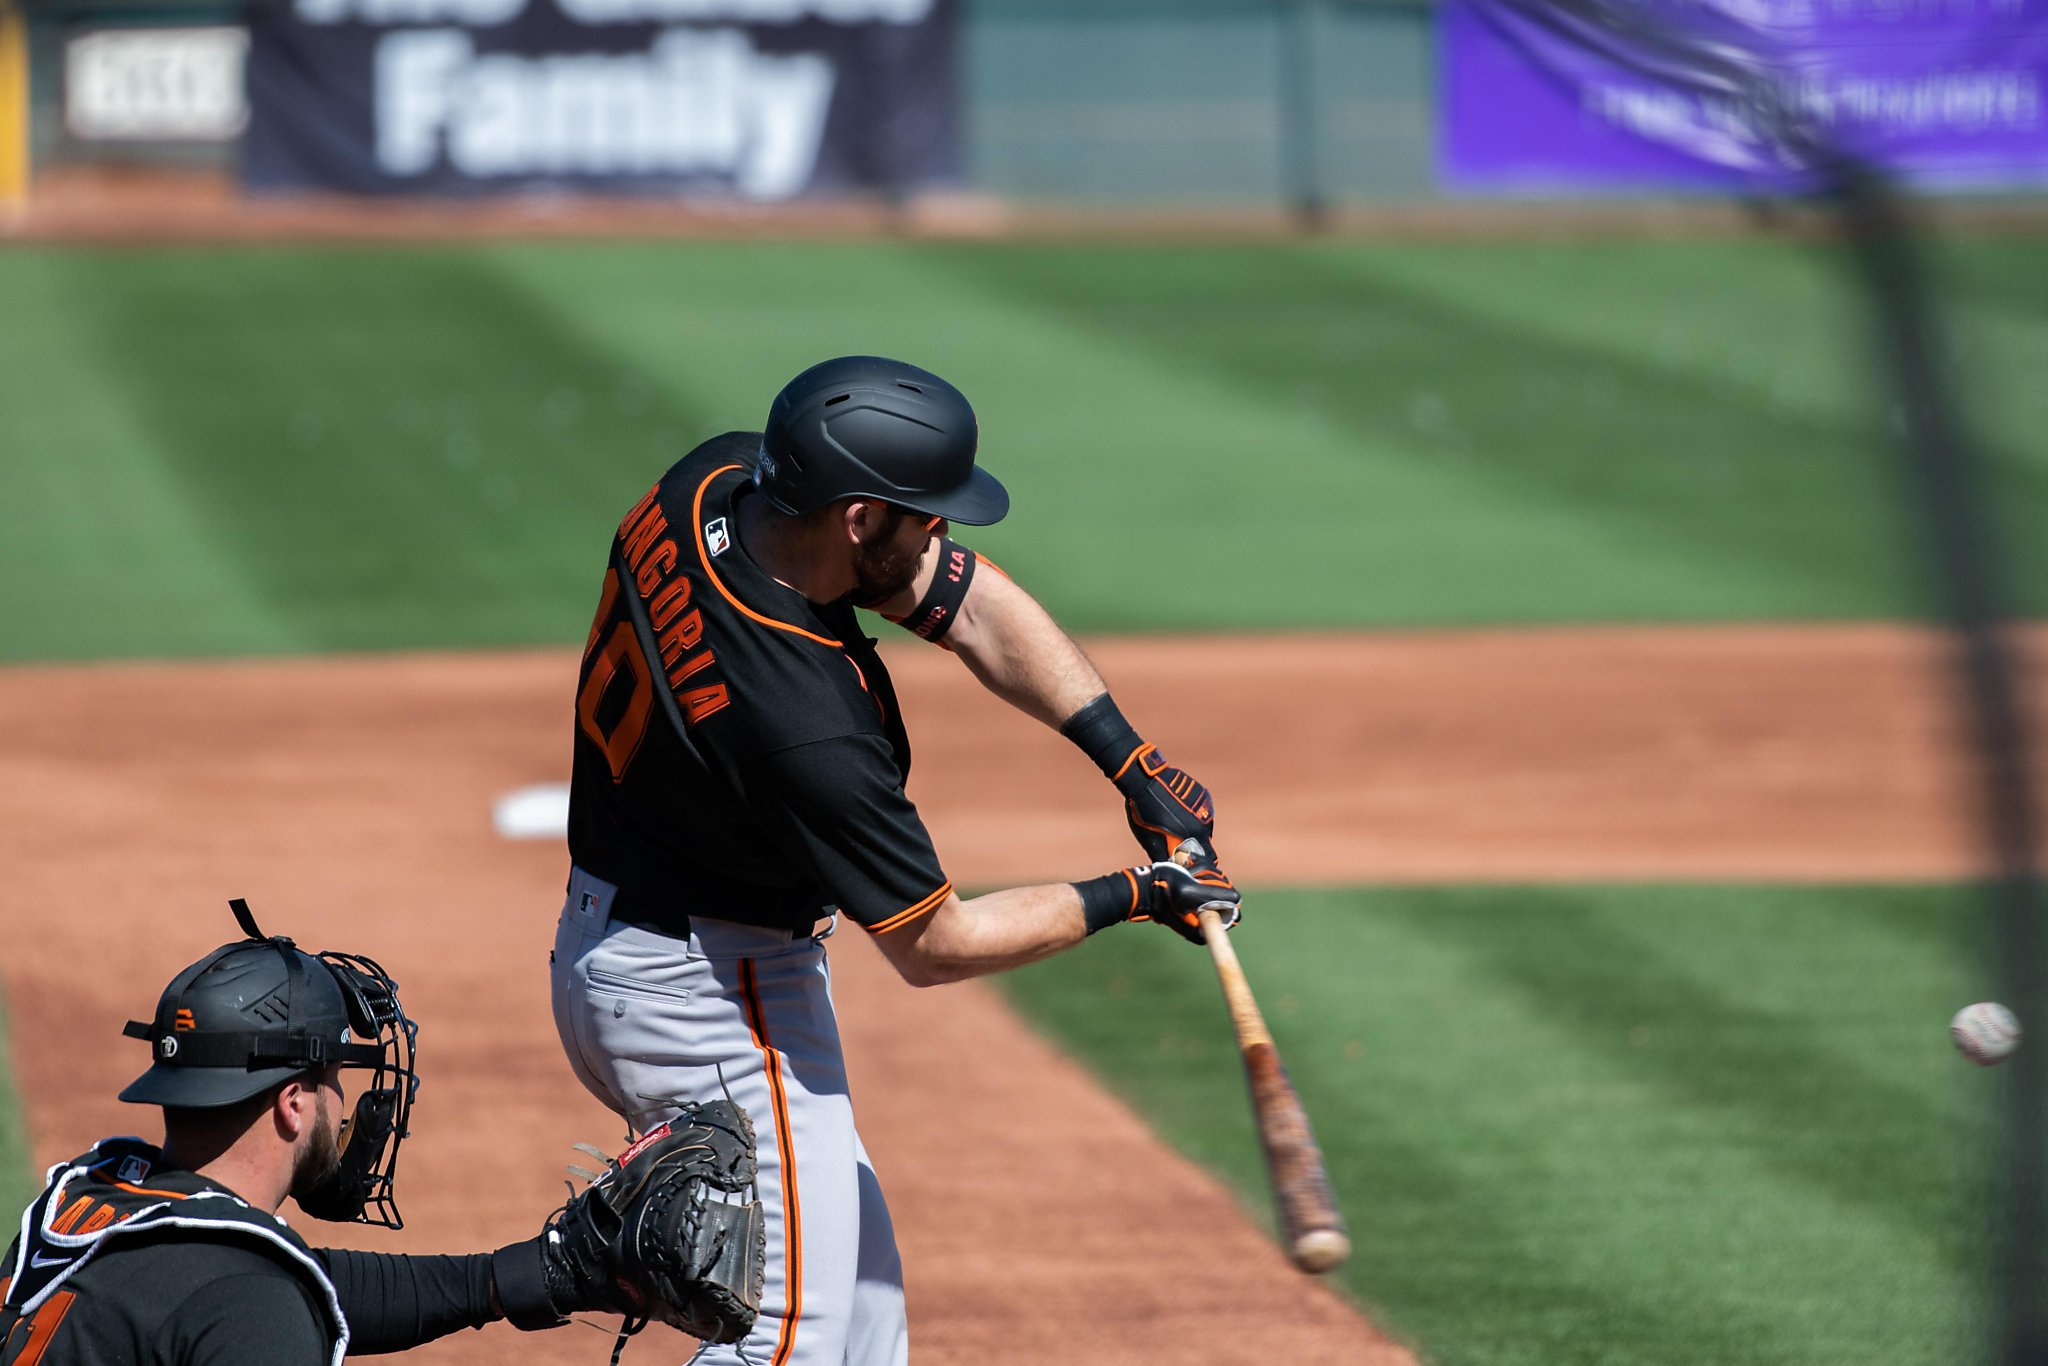 Even at this stage of his career, Giants' Evan Longoria could provide a needed boost